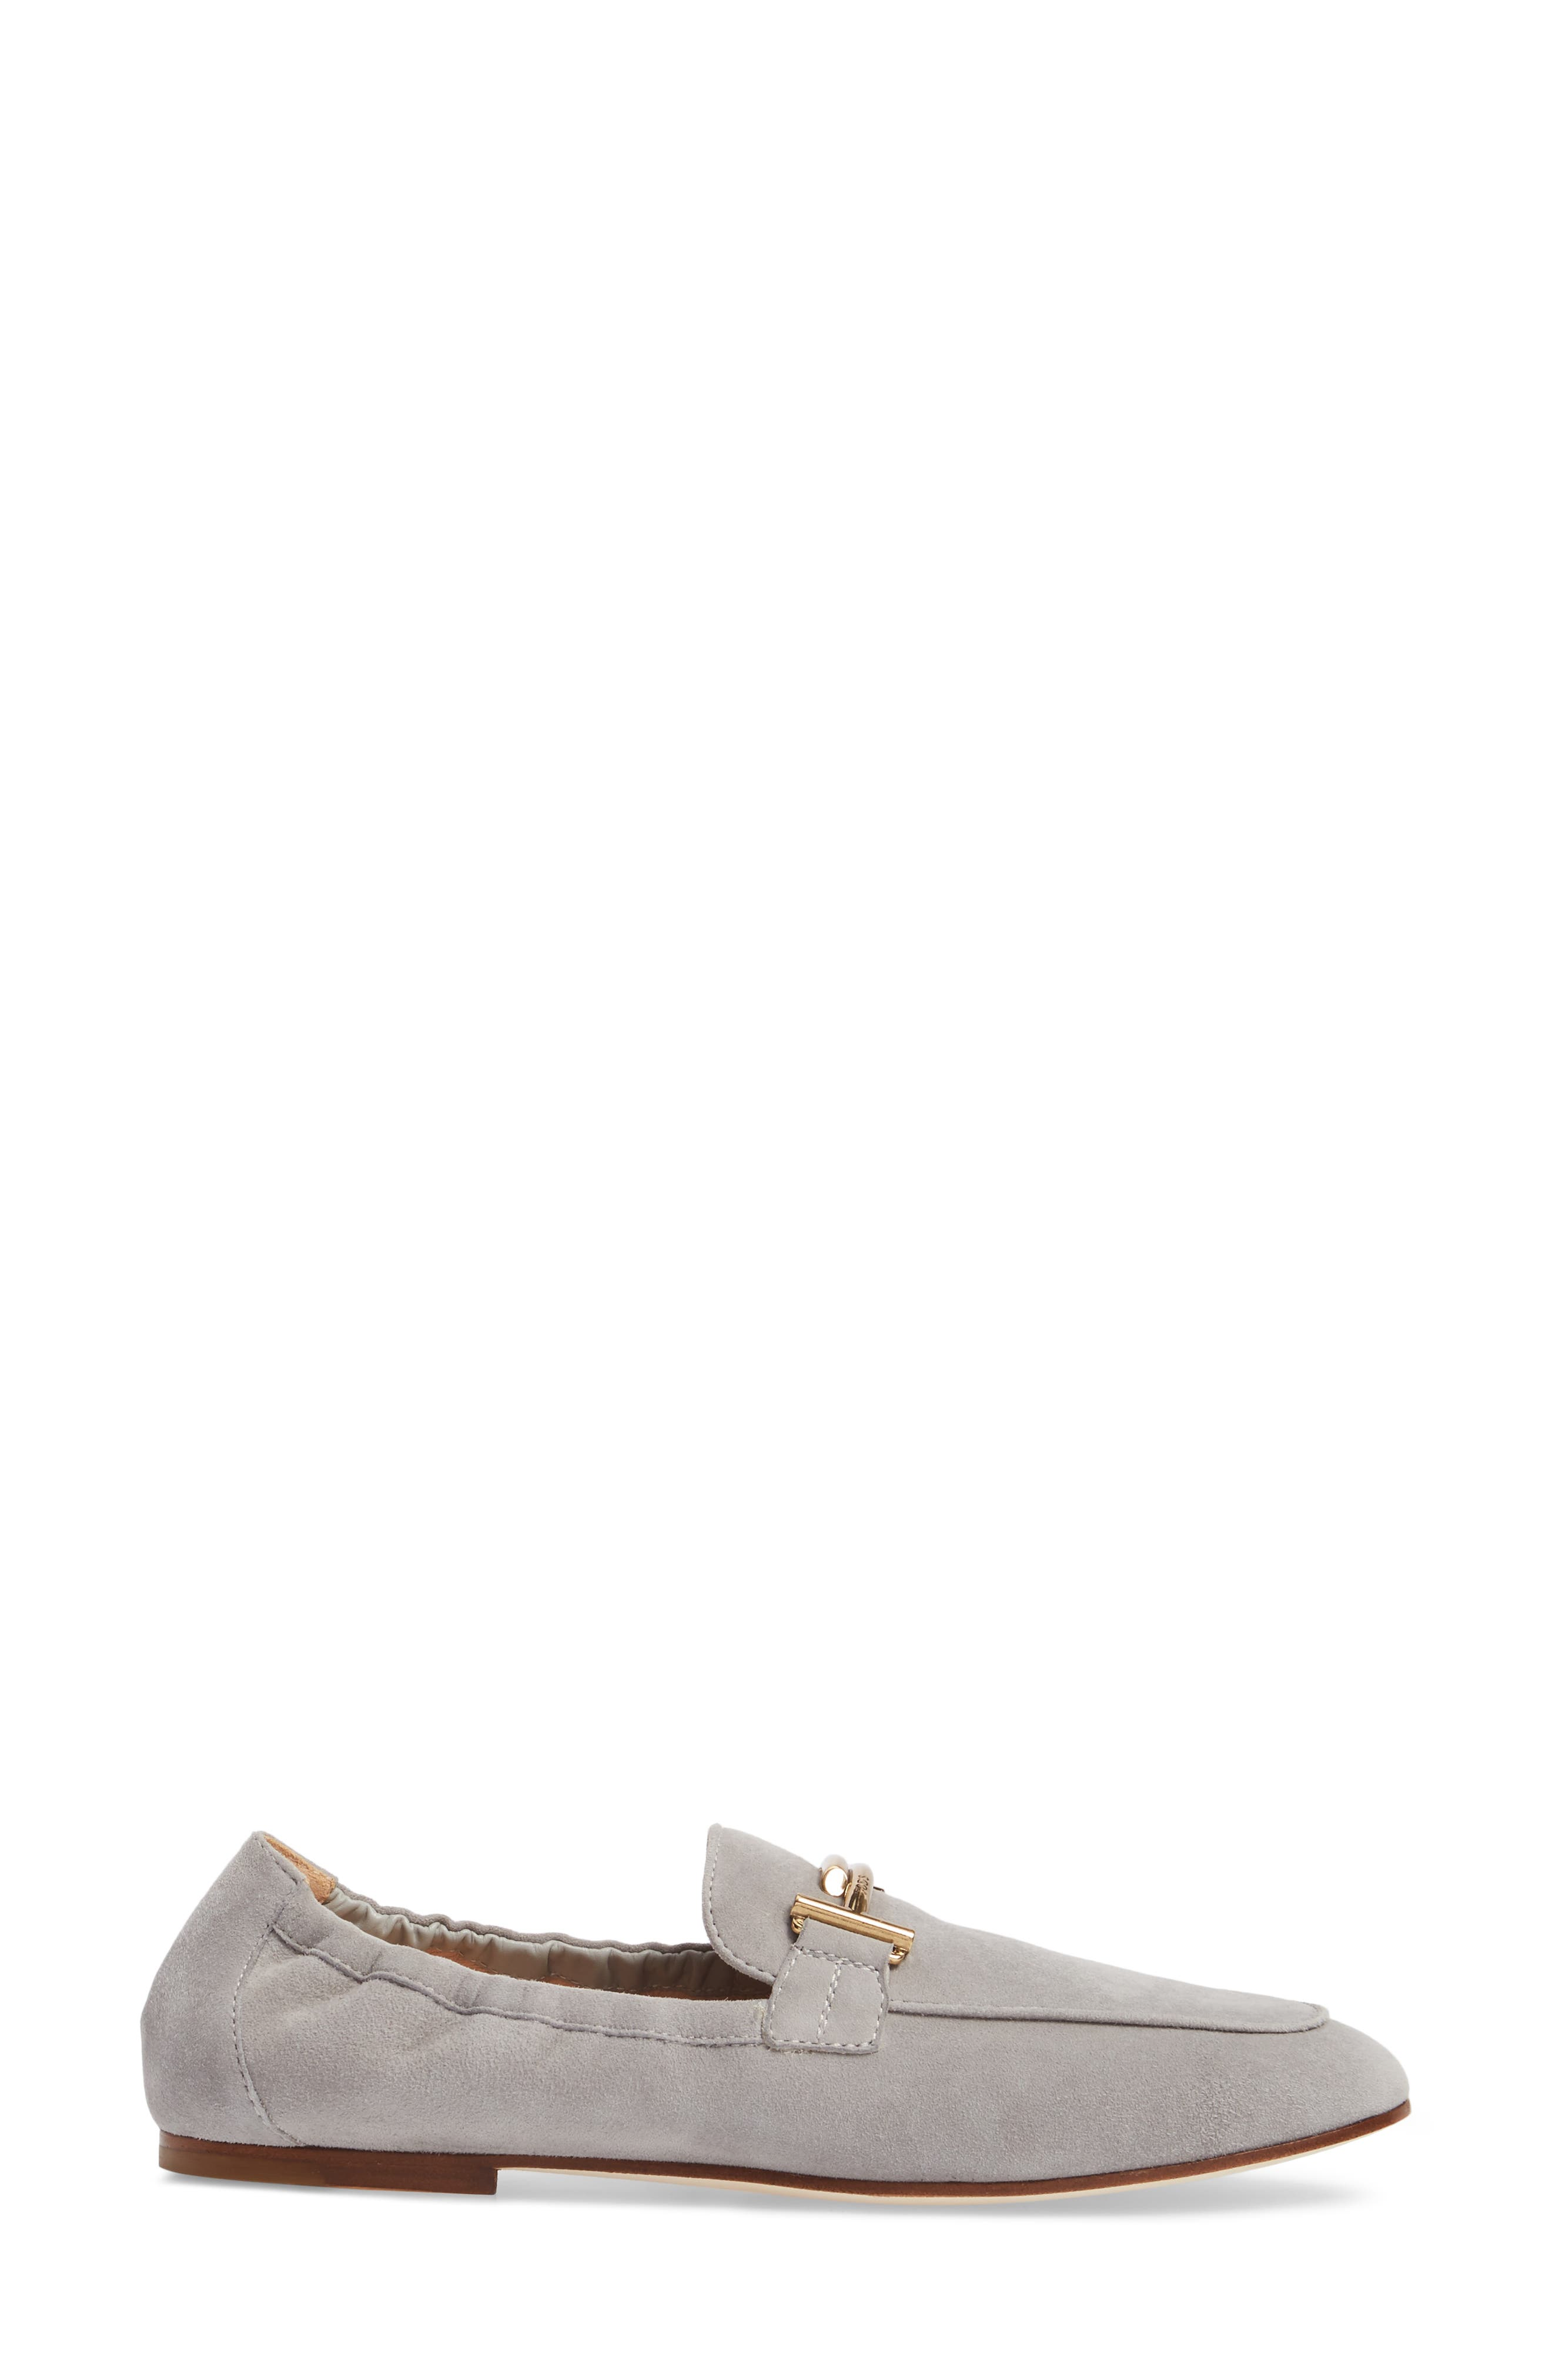 Double T Scrunch Loafer,                             Alternate thumbnail 3, color,                             020